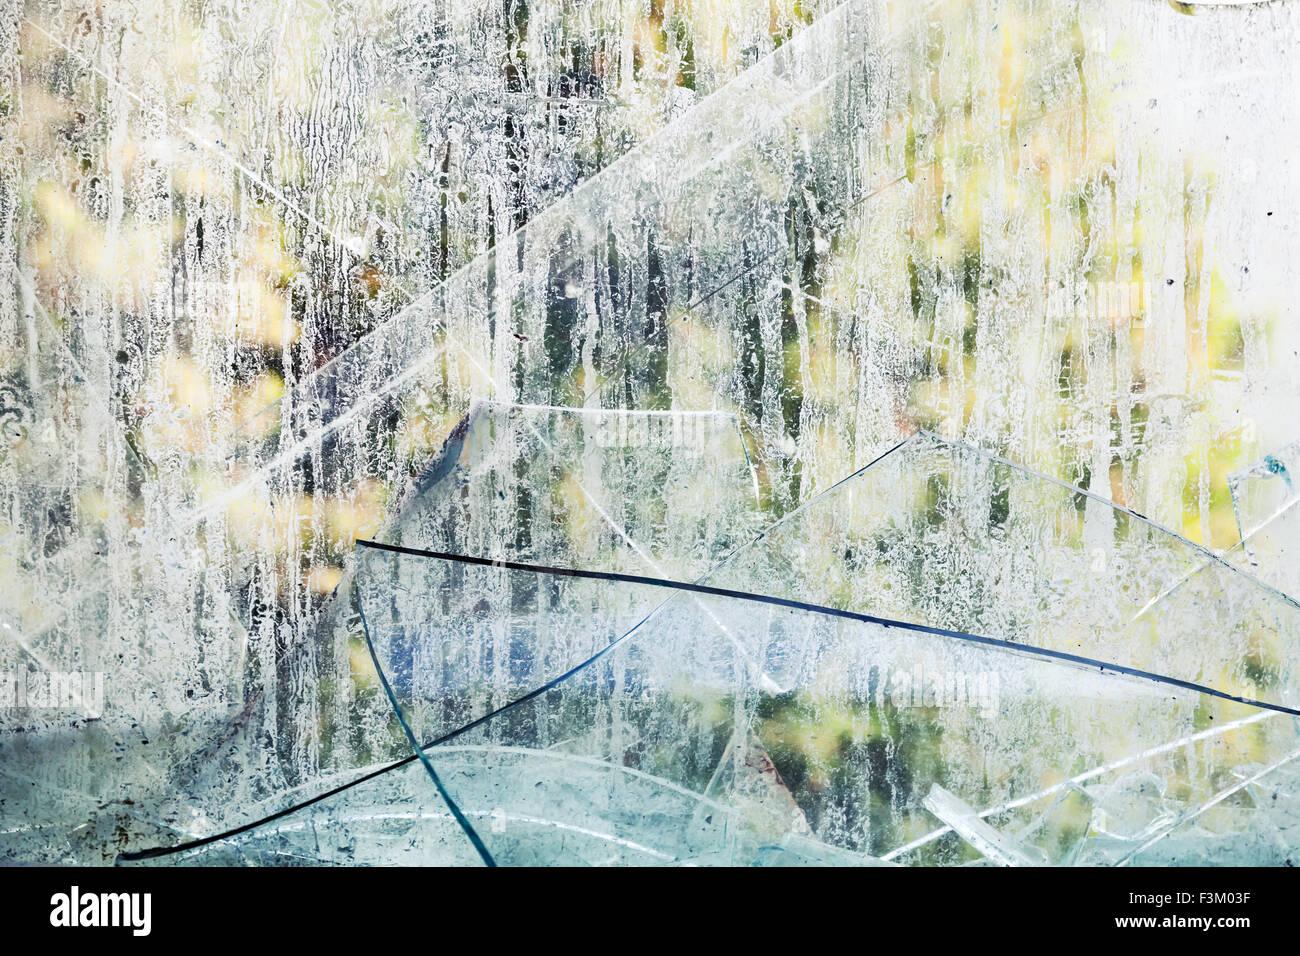 Dirty broken glass fragments, grungy background photo texture - Stock Image